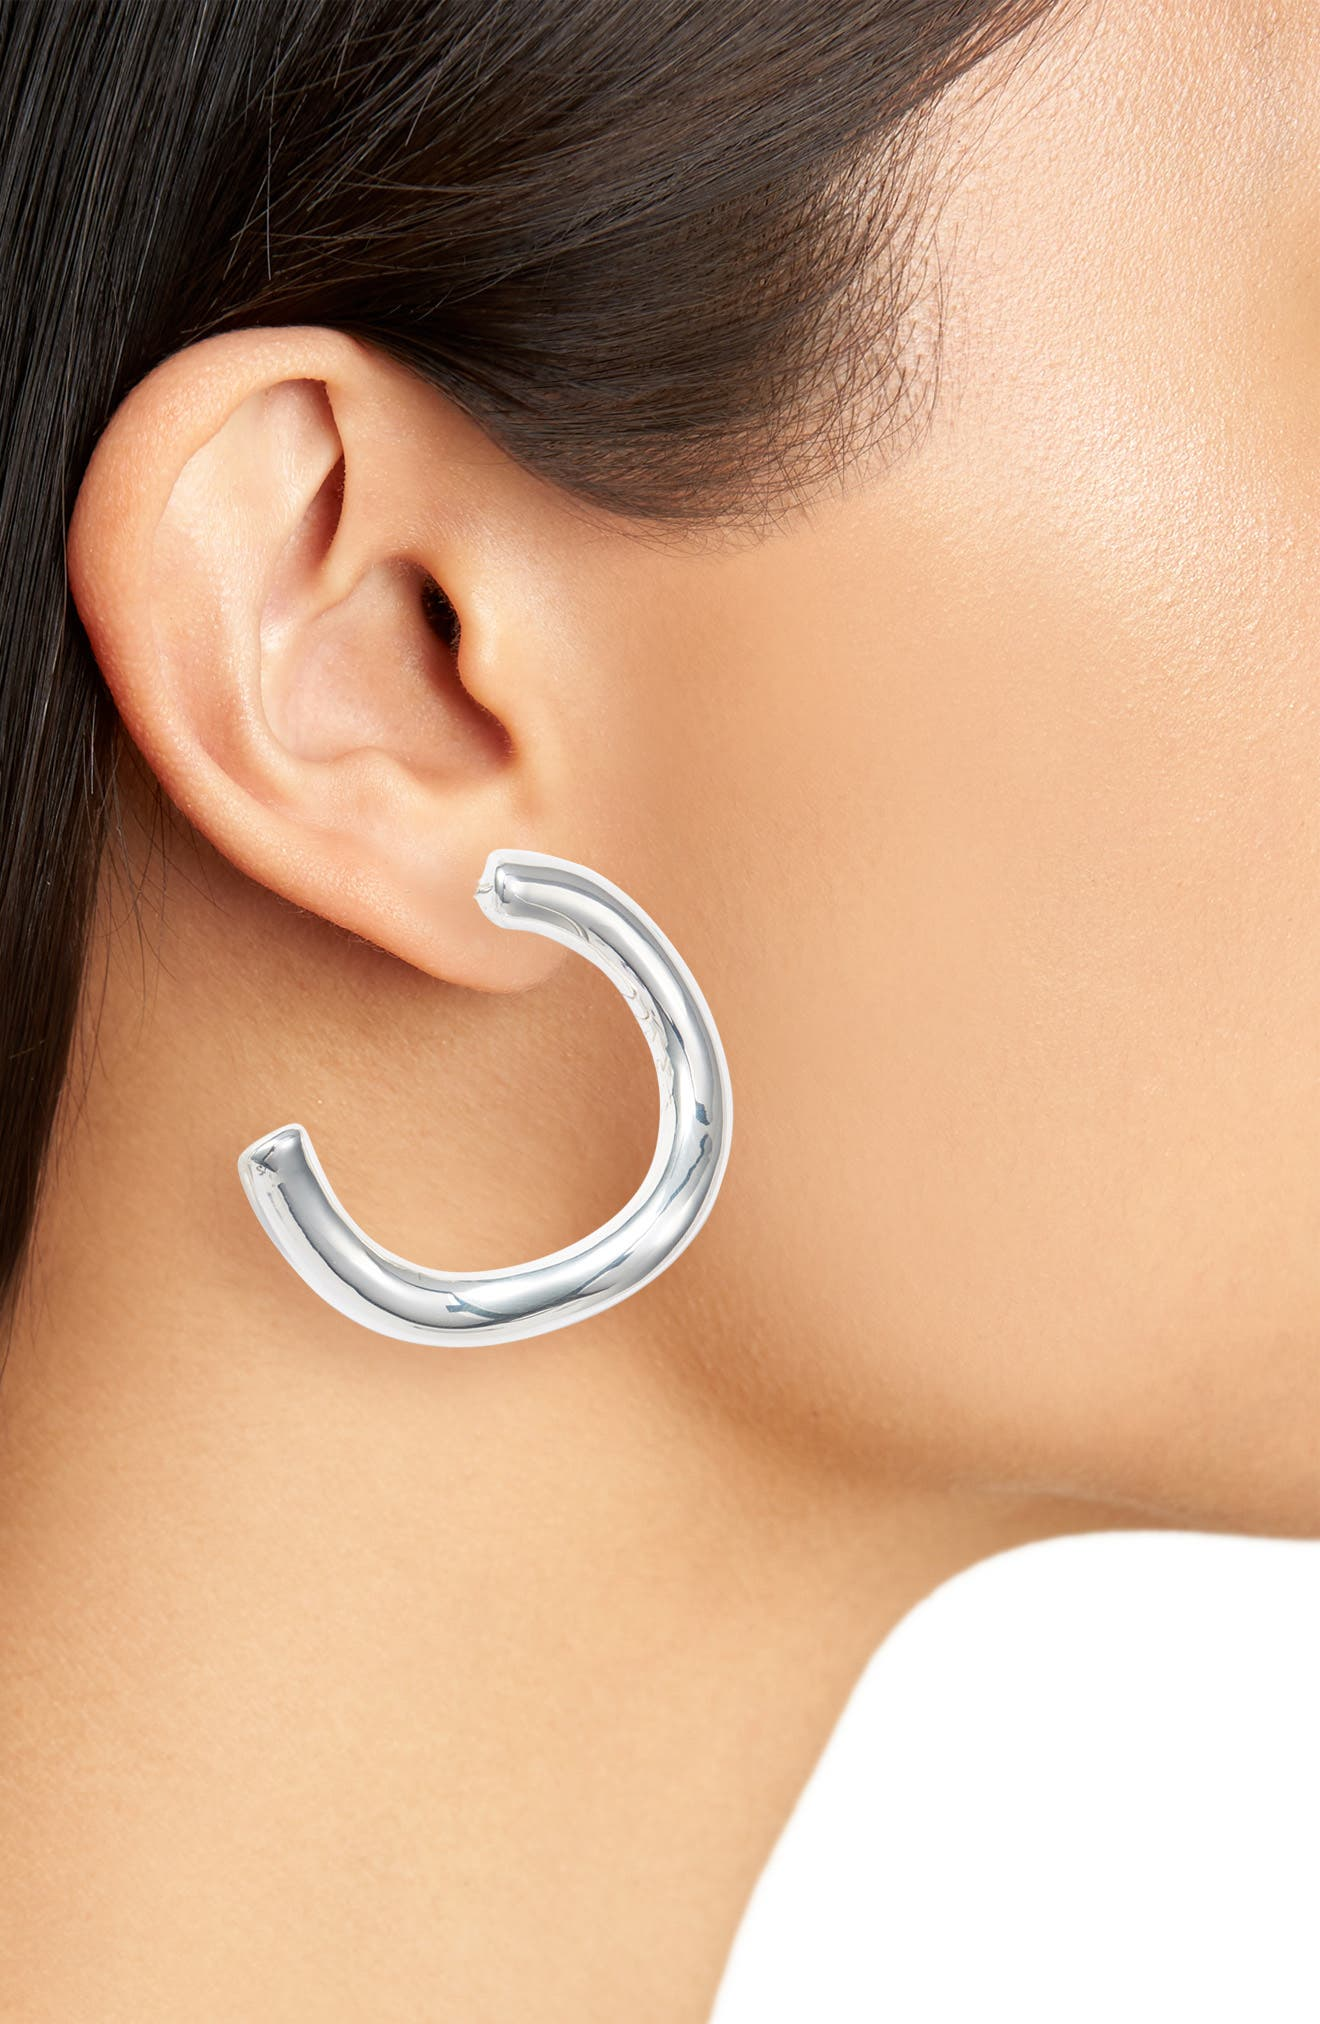 Curvy Hoop Earrings,                             Alternate thumbnail 2, color,                             SILVER